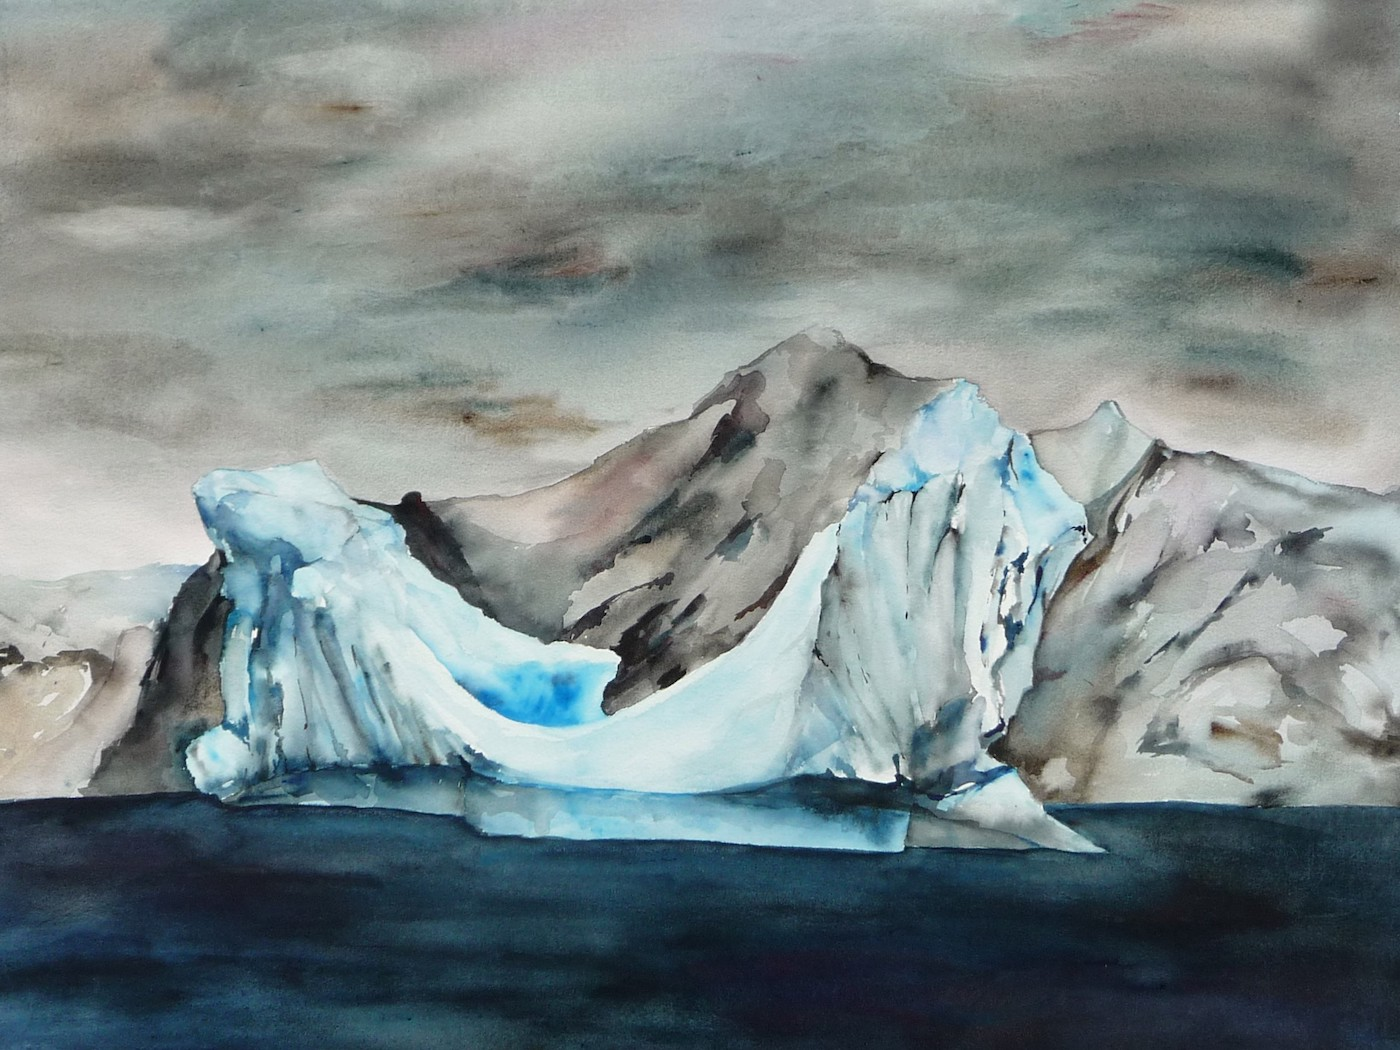 Watercolor painting Iceberg from our zodiac antarctica artist Lisa Goren watercolor on paper 22 x 30 inches